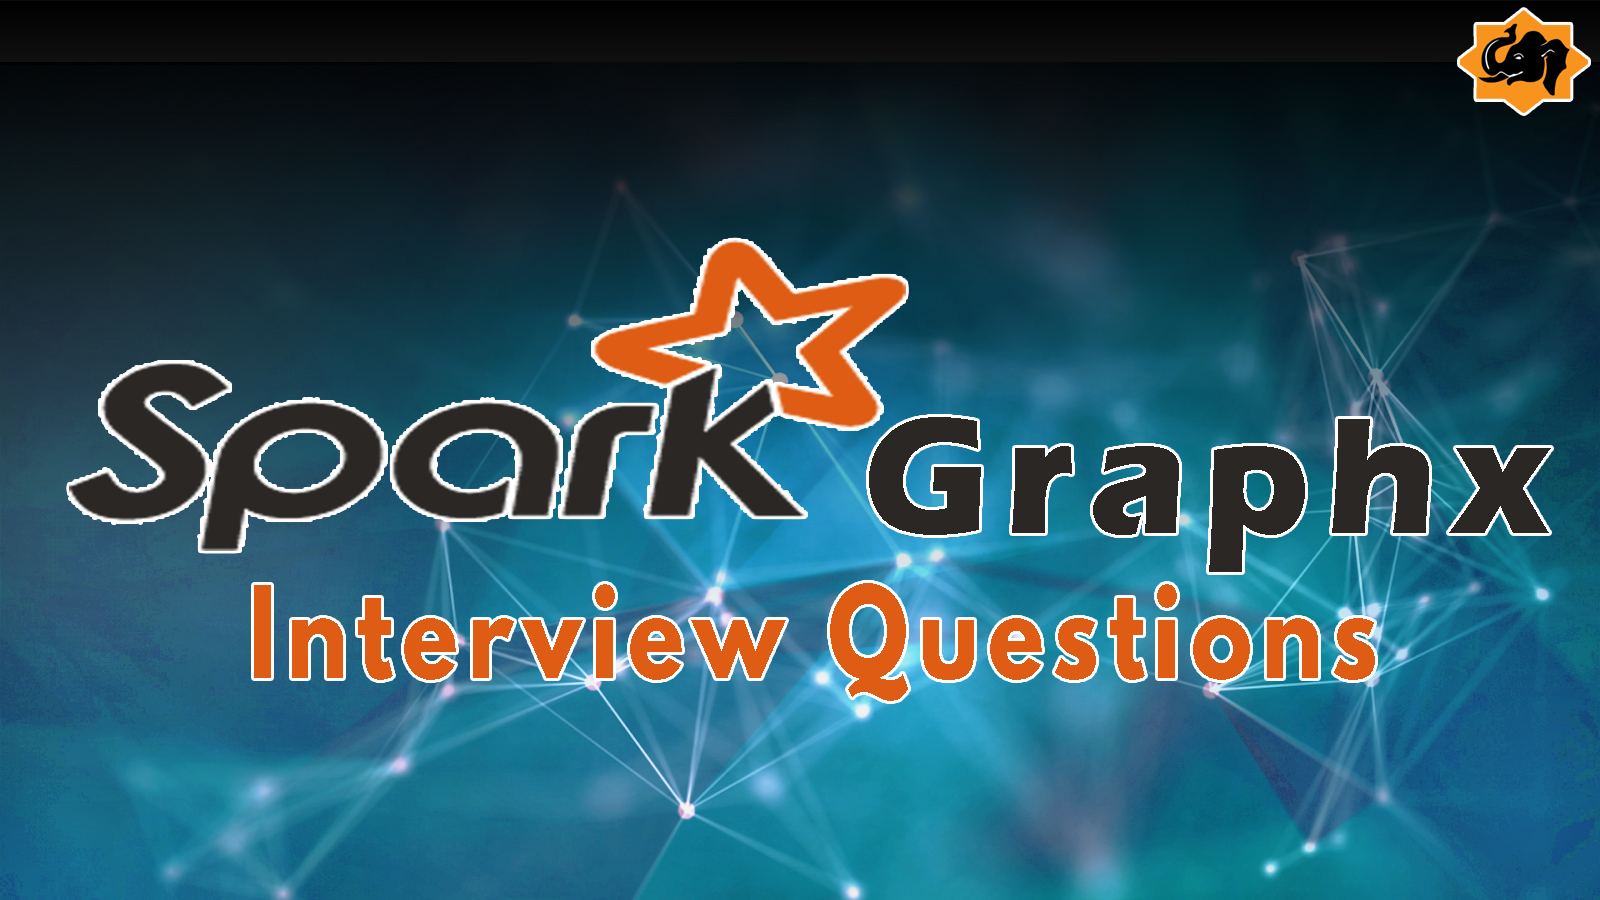 become a trainer big data training learn mapreduce sqoop pig top spark graphx interview questions